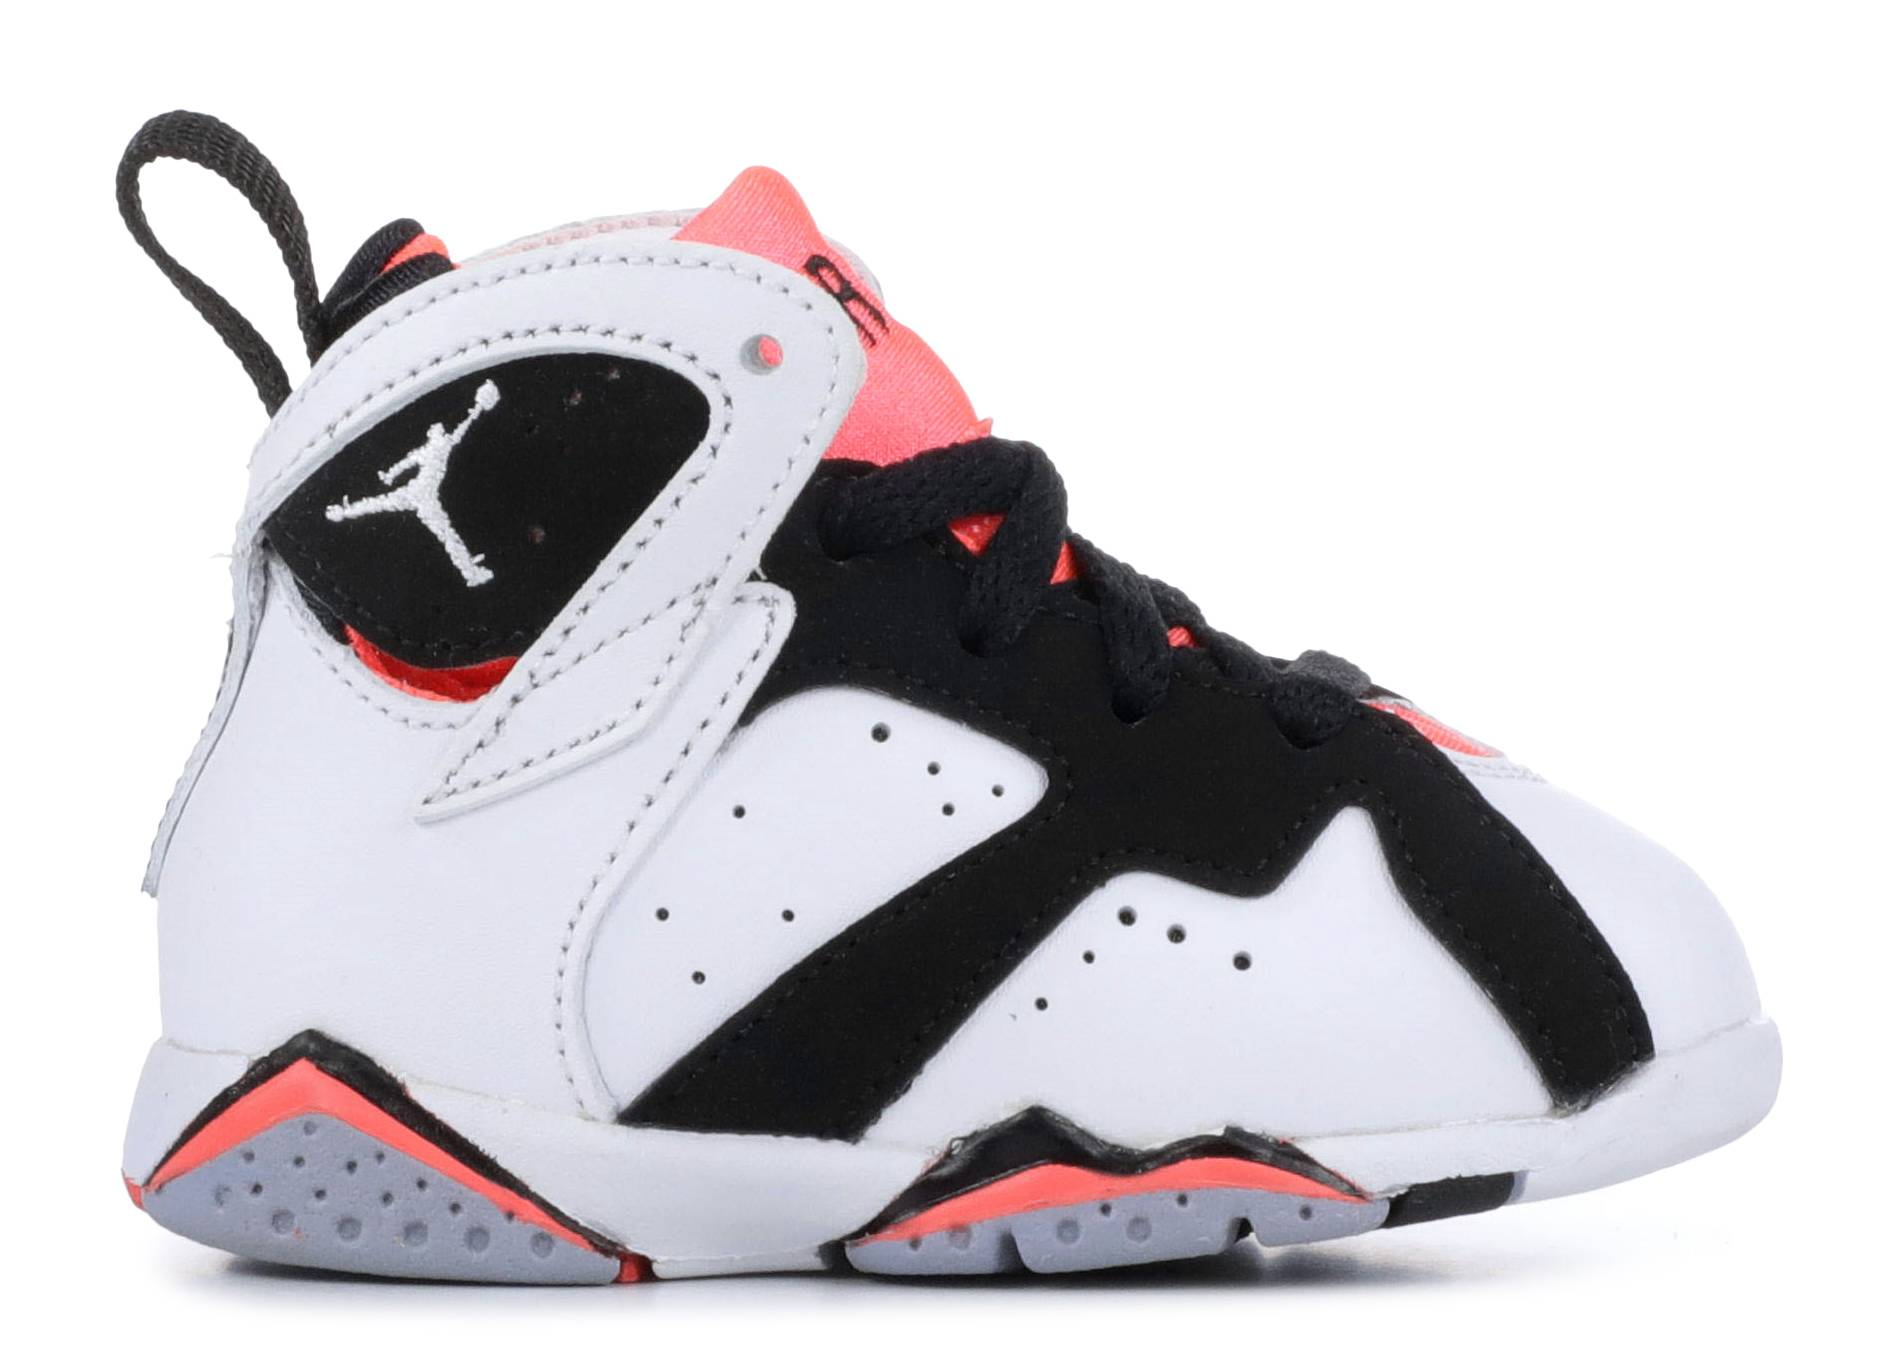 92780a145a40 Air Jordan 7 (VII) Shoes - Nike